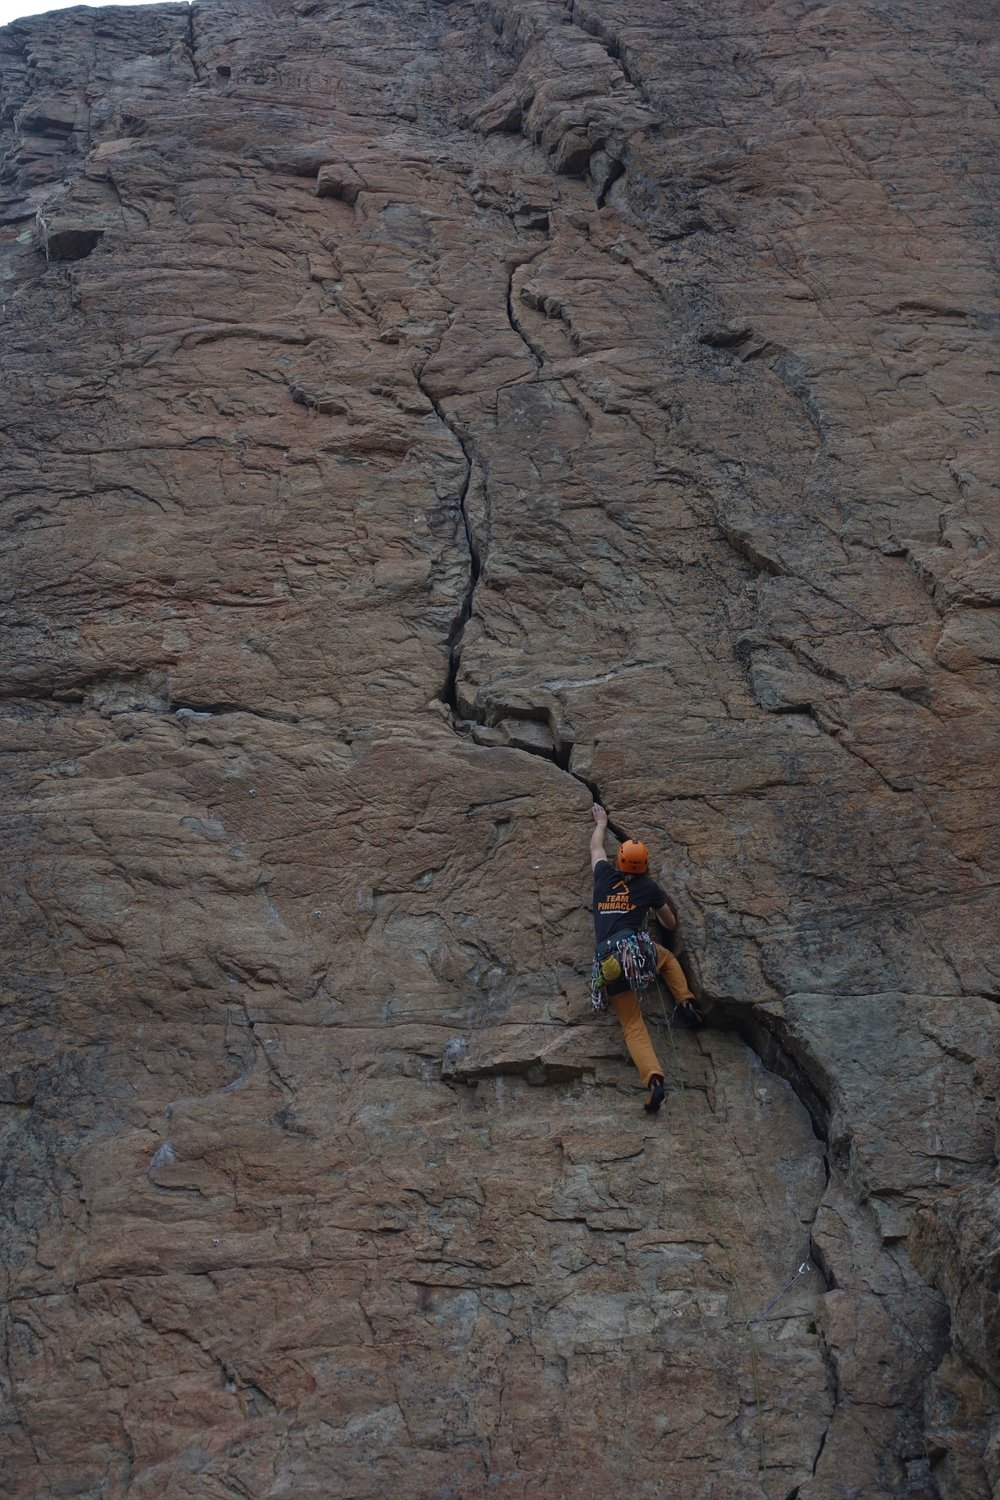 I love onsight climbing. Here I am on Grassy Glades, a 5.10a/18 climb protected using natural protection in the prominent crack system.